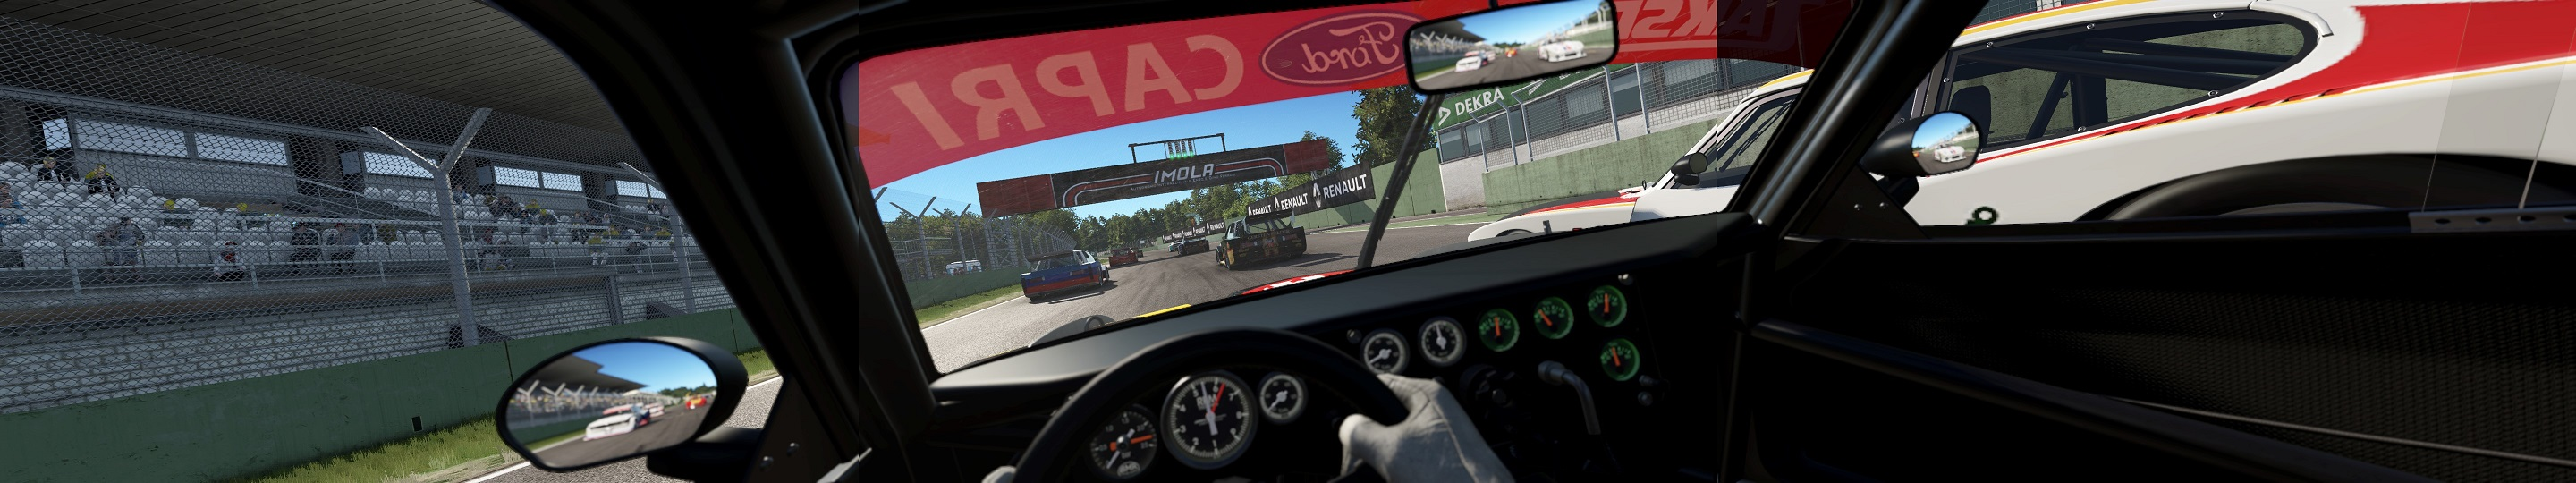 PCARS GROUP 5 1 IMOLA.jpg